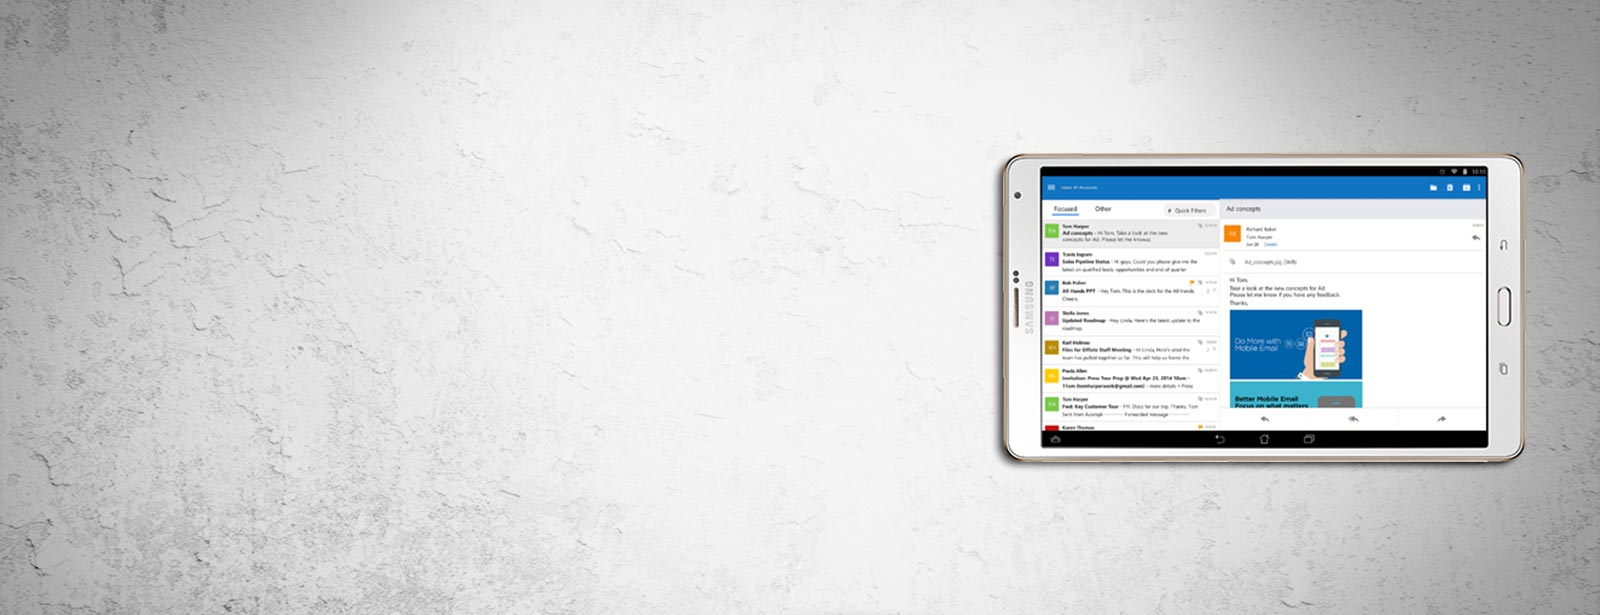 Outlook on Android tablet